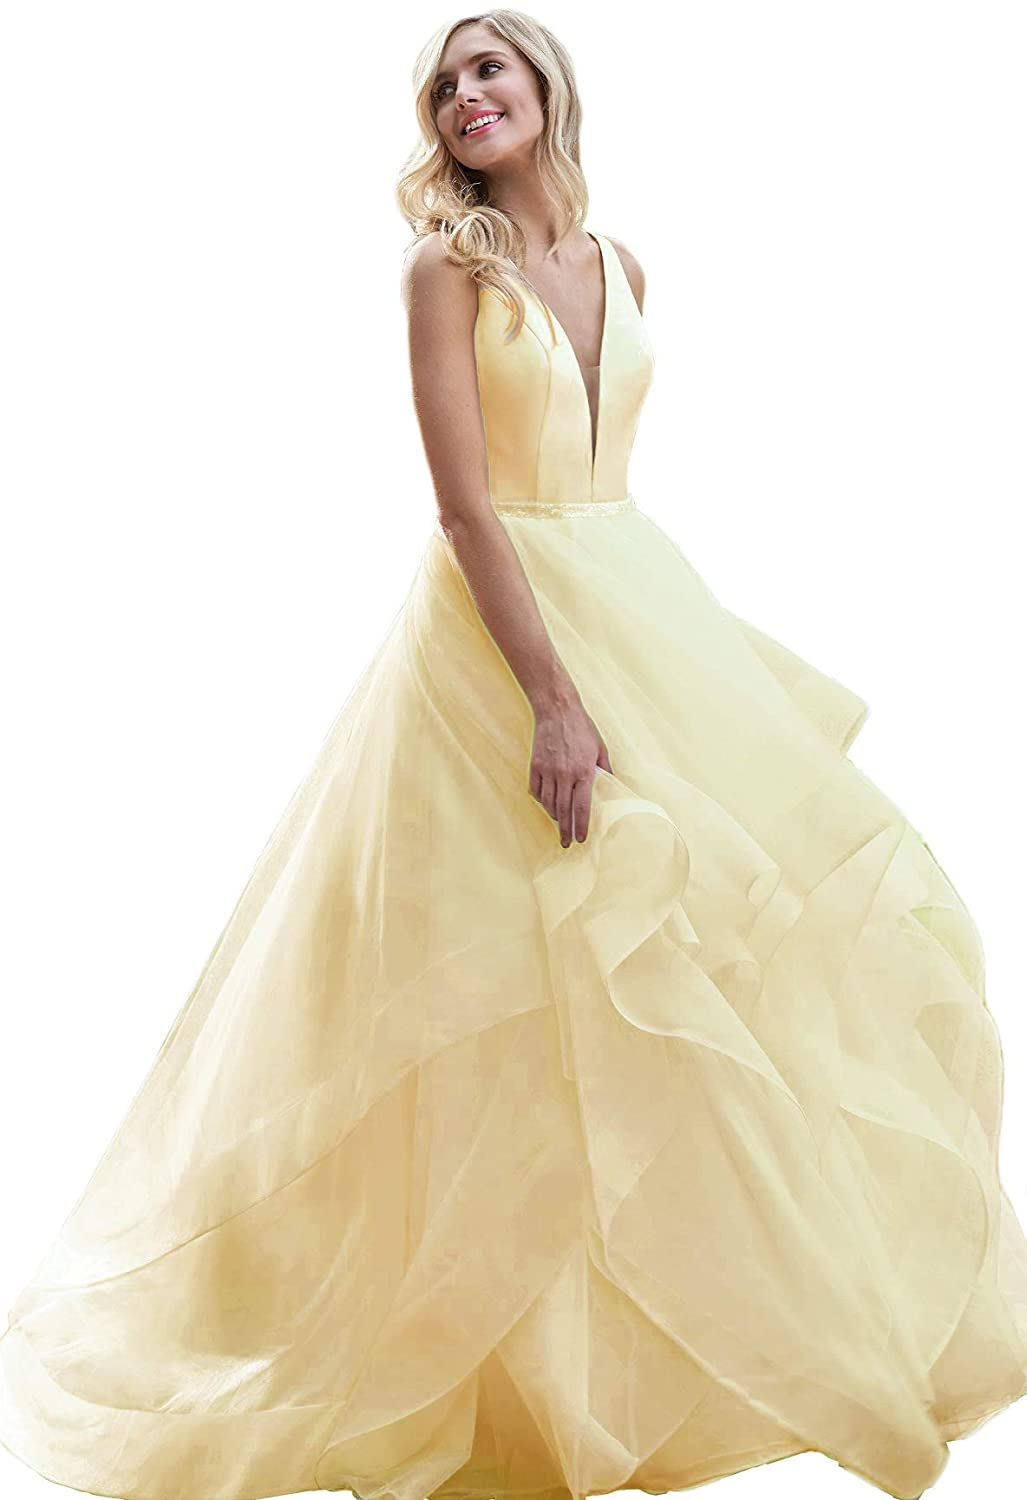 Yellow liangjinsmkj Sweet 16 Girl's Boat Neck Ball Gown Backless Crystal Beaded Bodice Tulle Quinceanera Dresses